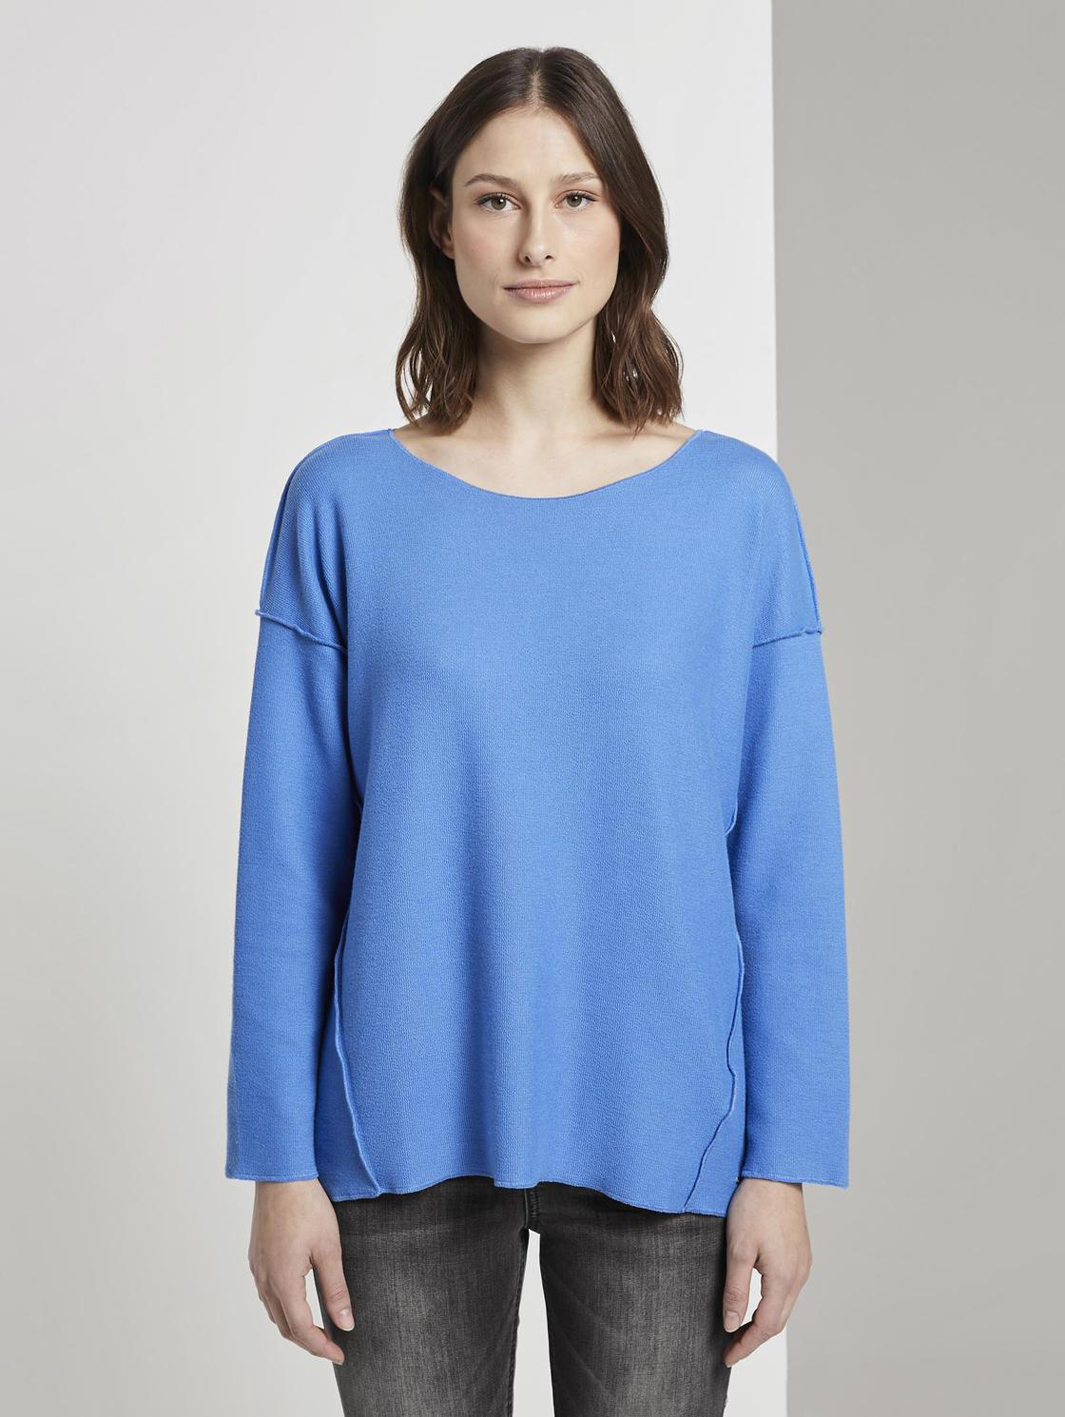 Tom Tailor geripptes Oversized Shirt blue